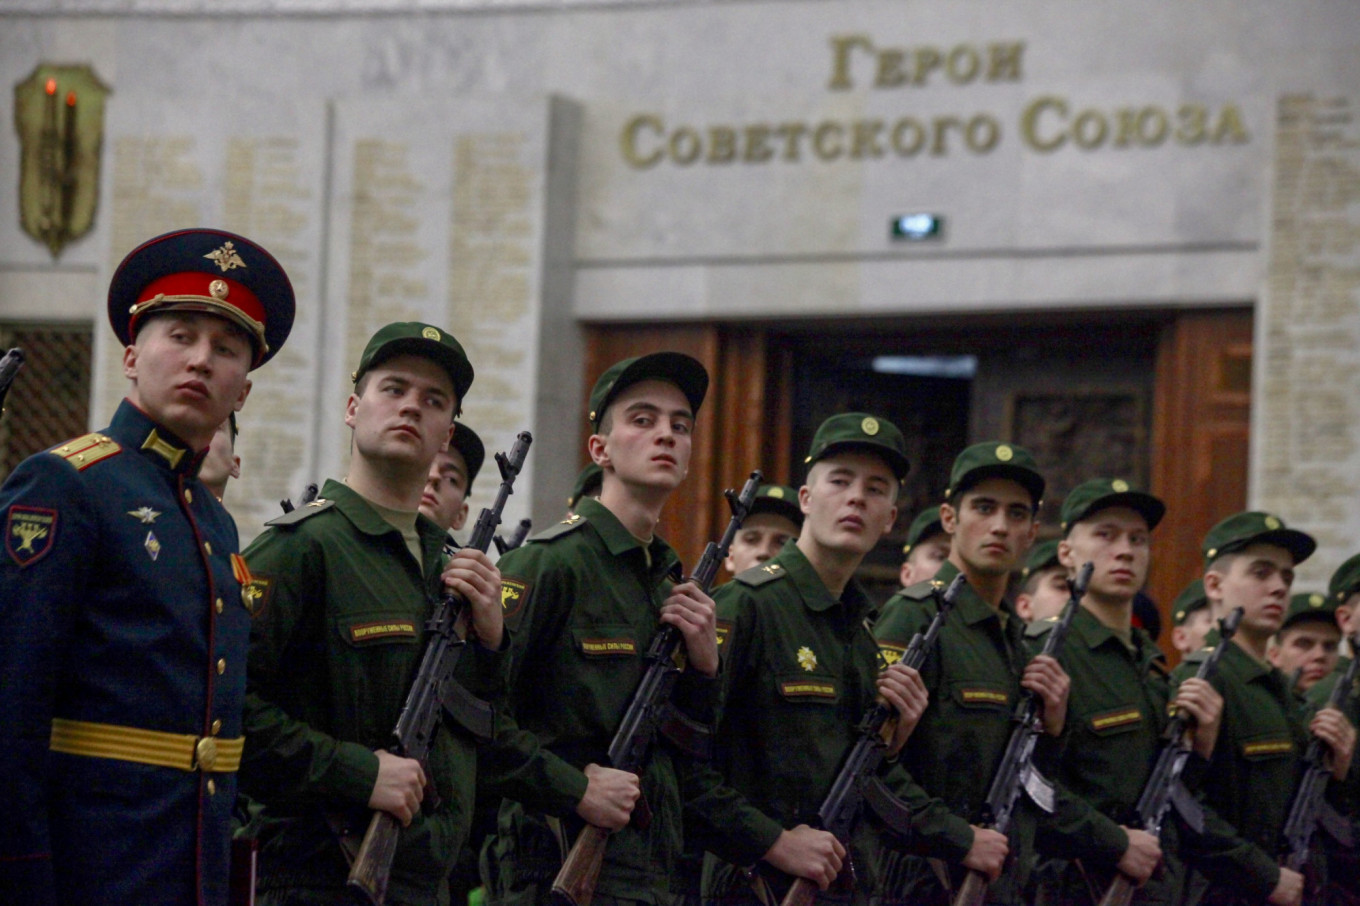 Russian Military Seeks Upper Hand With 'Genetic Passport' for Soldiers, Top Scientist Says